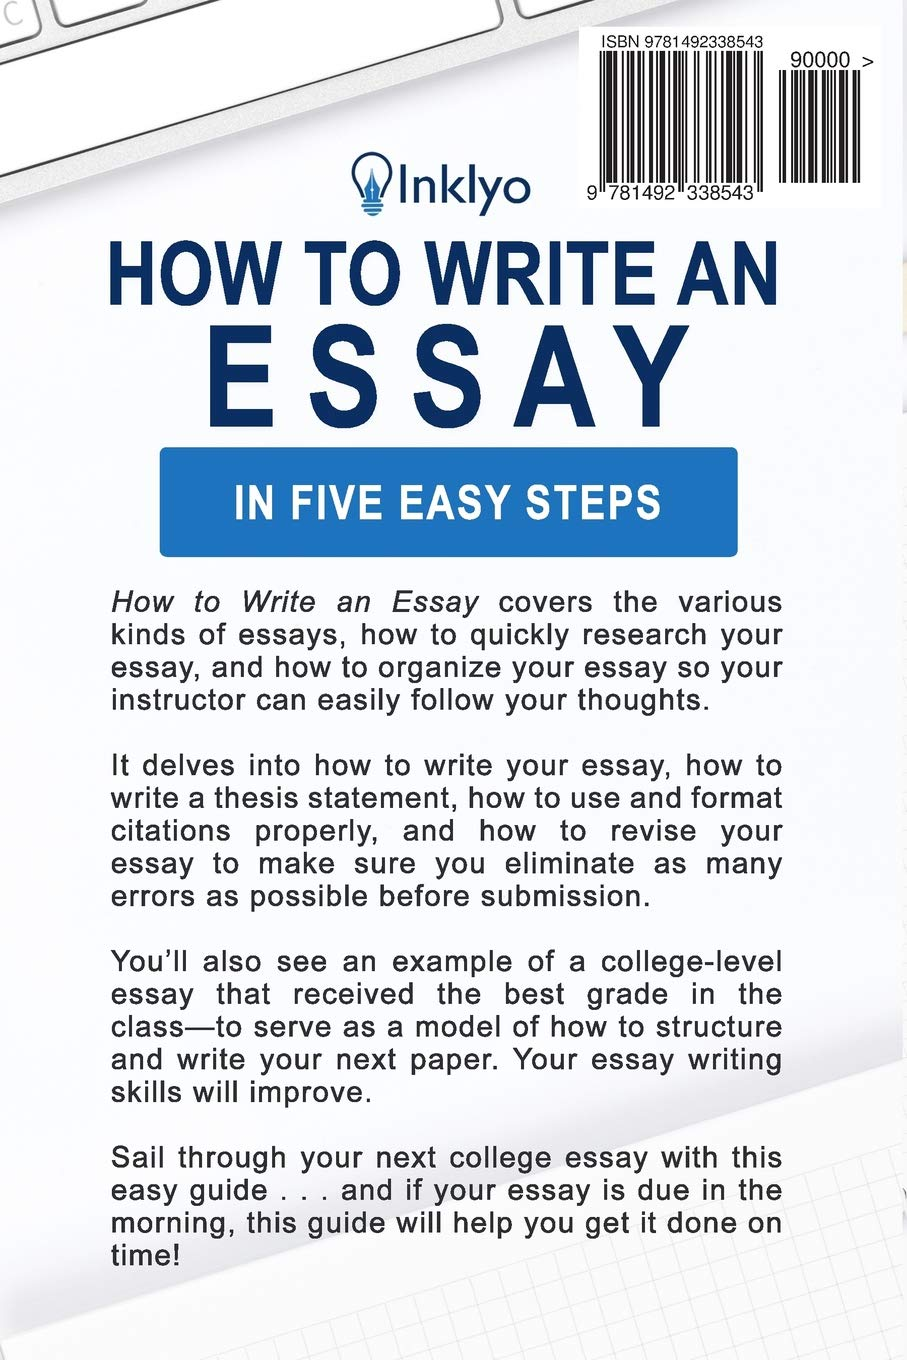 007 How To Make An Essay 71v7ckw5pll Unusual Self Introduction The Best In Longer With Periods Full